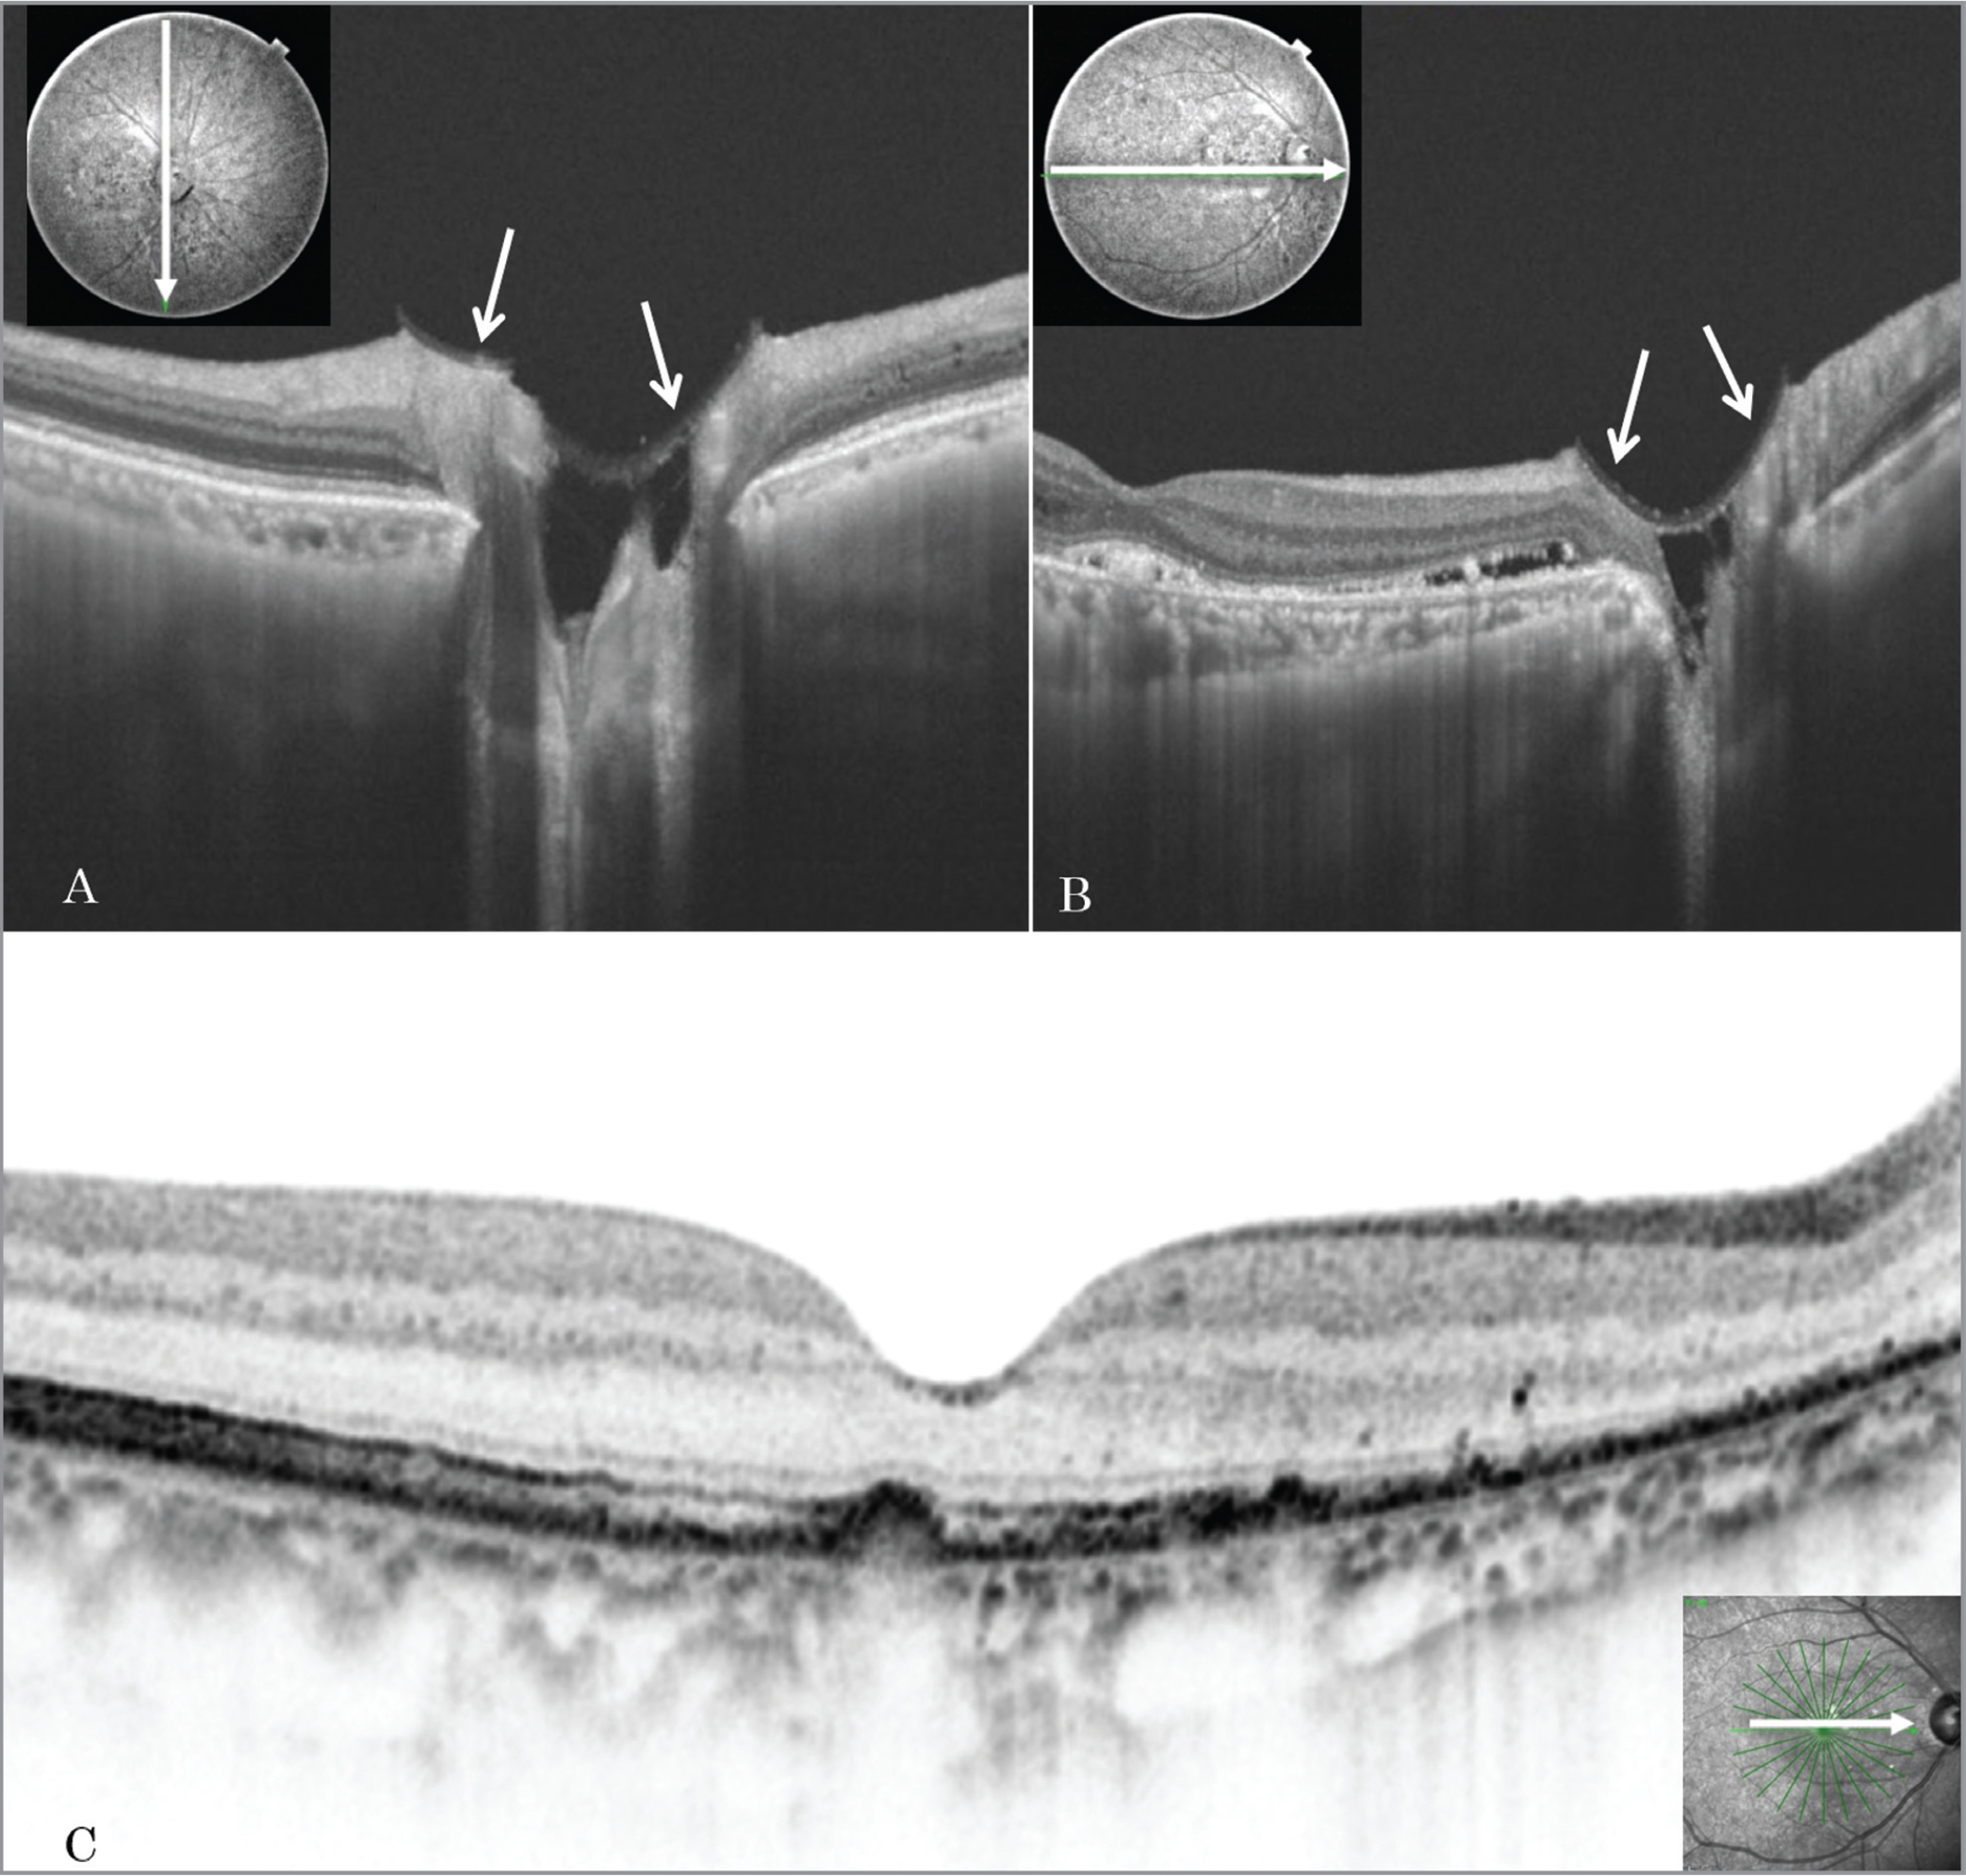 Postoperative optical coherence tomography (OCT) image in Case 1. (A, B) The anterior capsule shows that satisfactory fixation onto the optic disc has been achieved, based on vertical and horizontal swept-source OCT scans (arrows). (C) Complete disappearance of retinal detachment 2 months postoperatively.